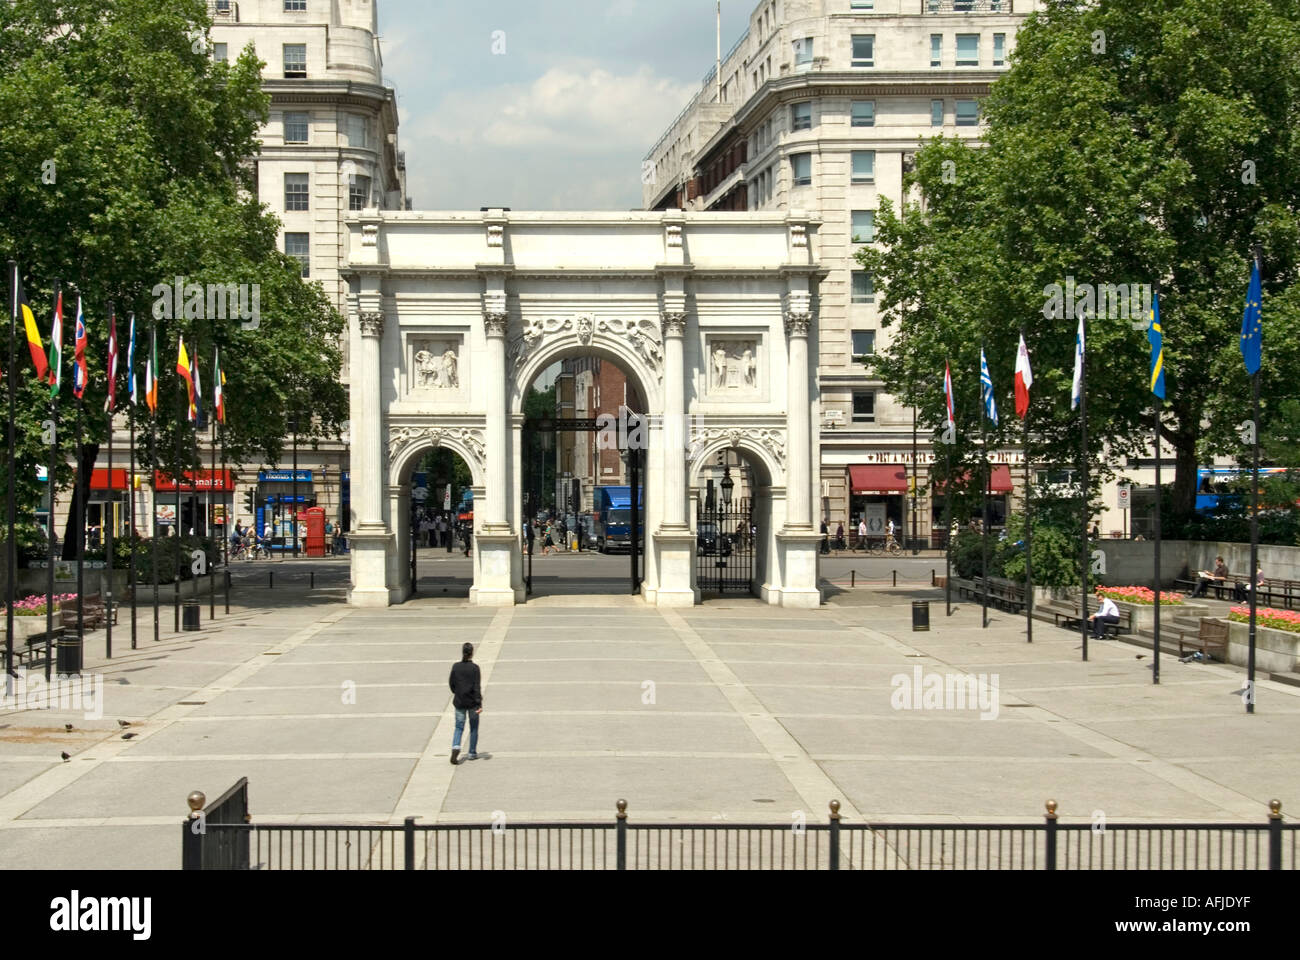 Tyburn Way Marble Arch close to Oxford Street London - Stock Image